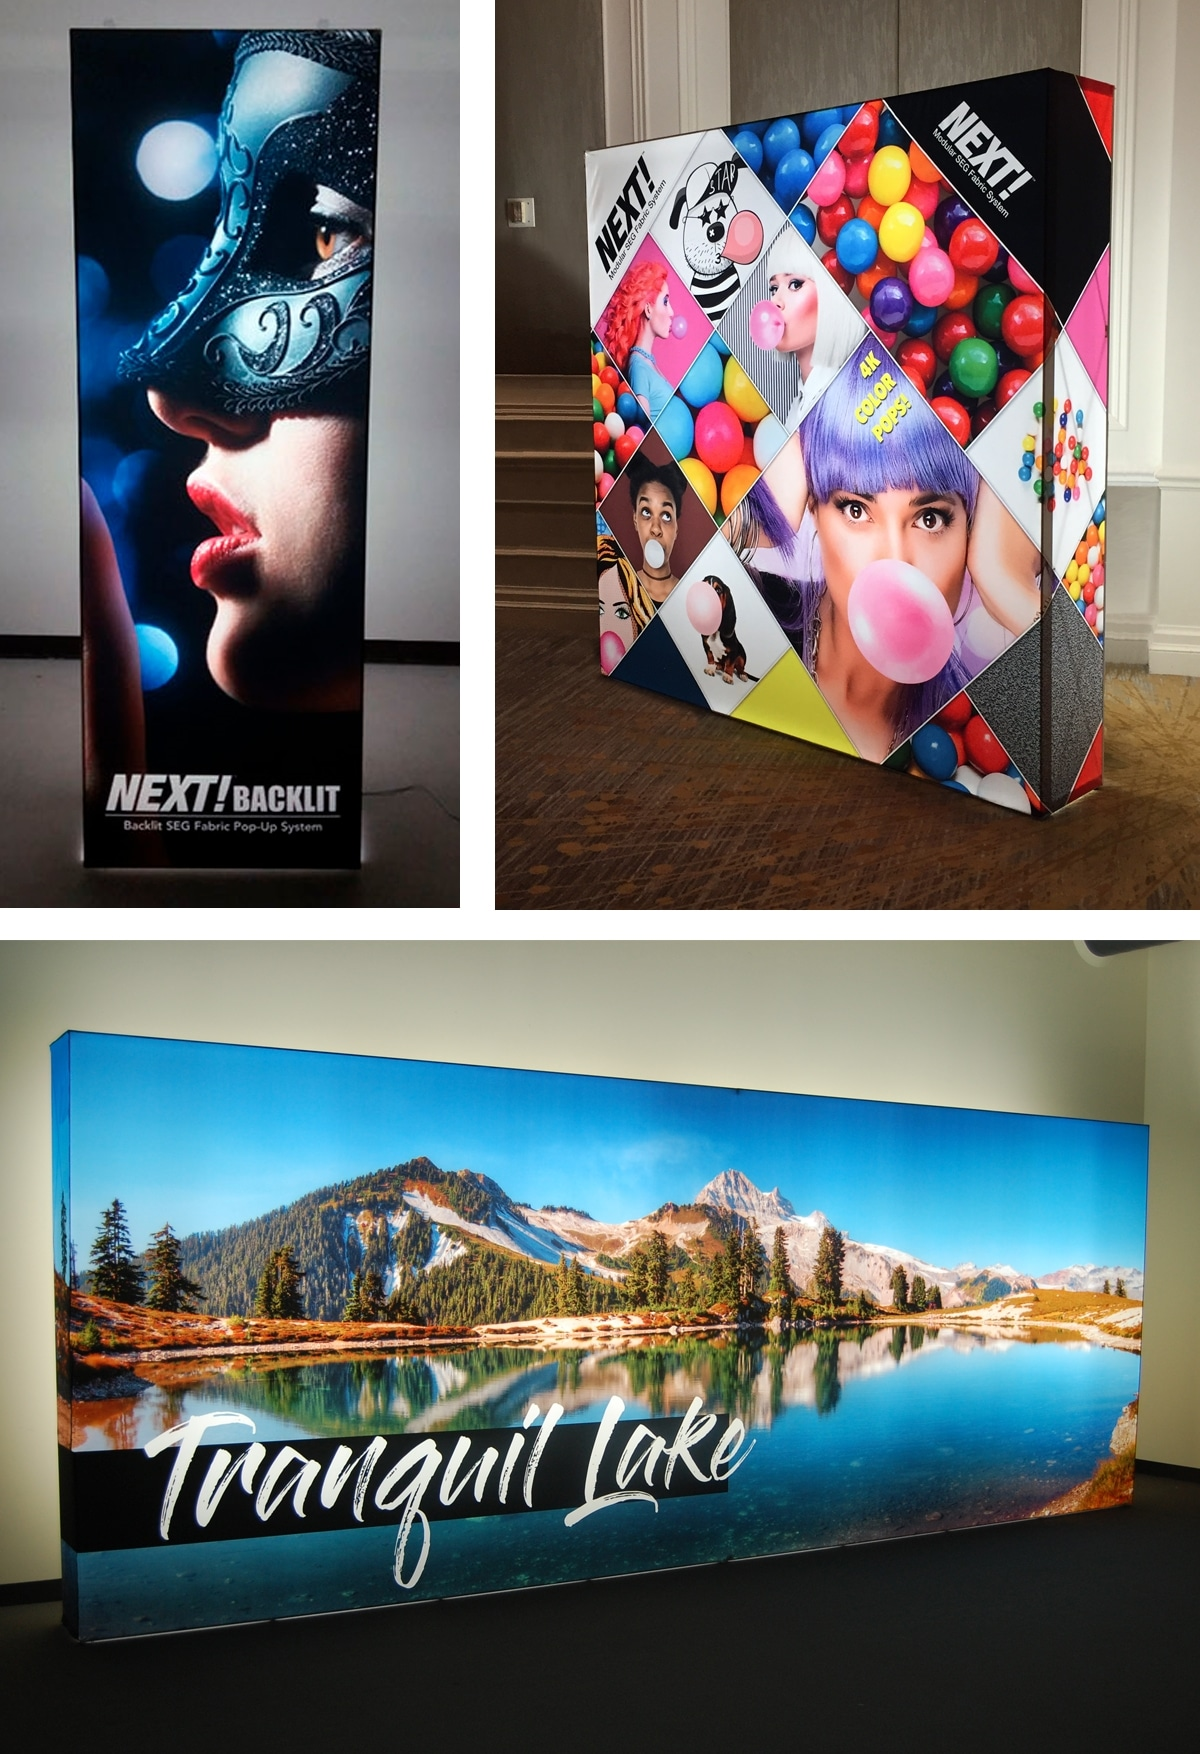 Fabric Exhibition Stand Zones : Great trade show display ideas to attract traffic american image